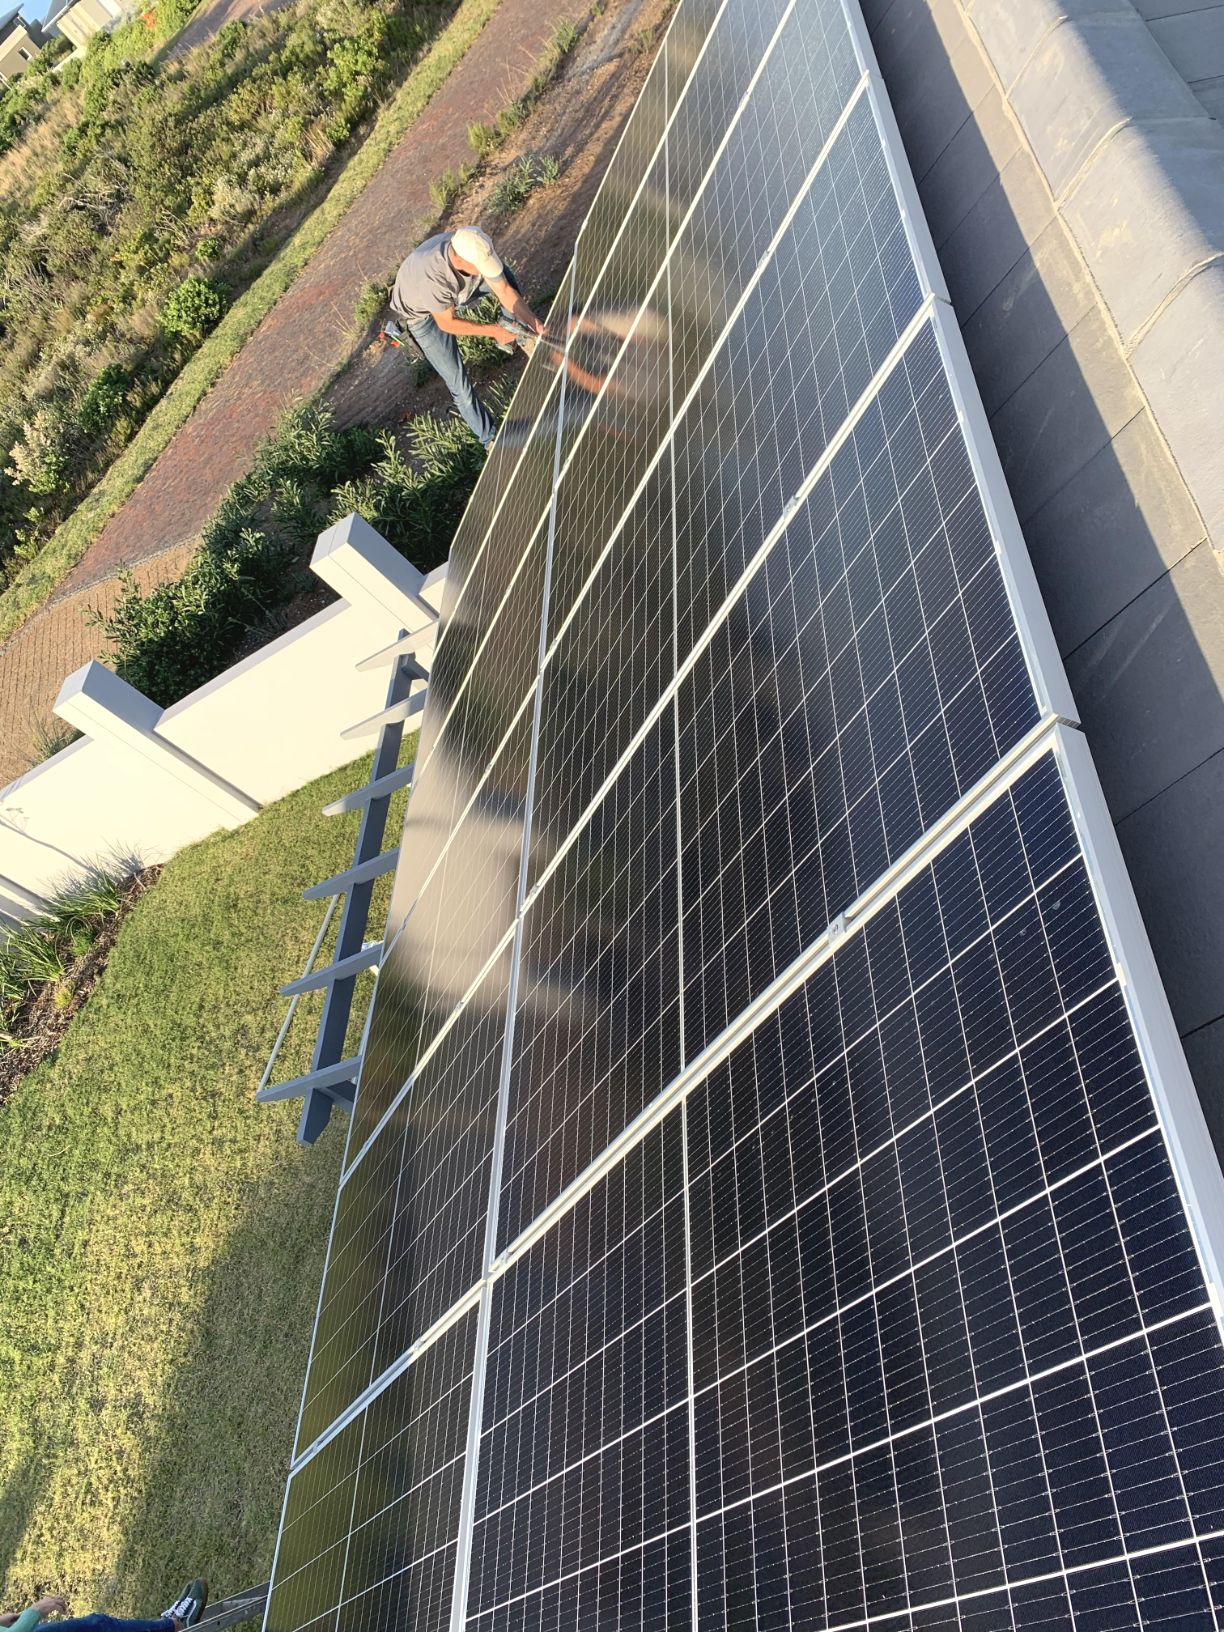 Final touches to 12 PV Panels